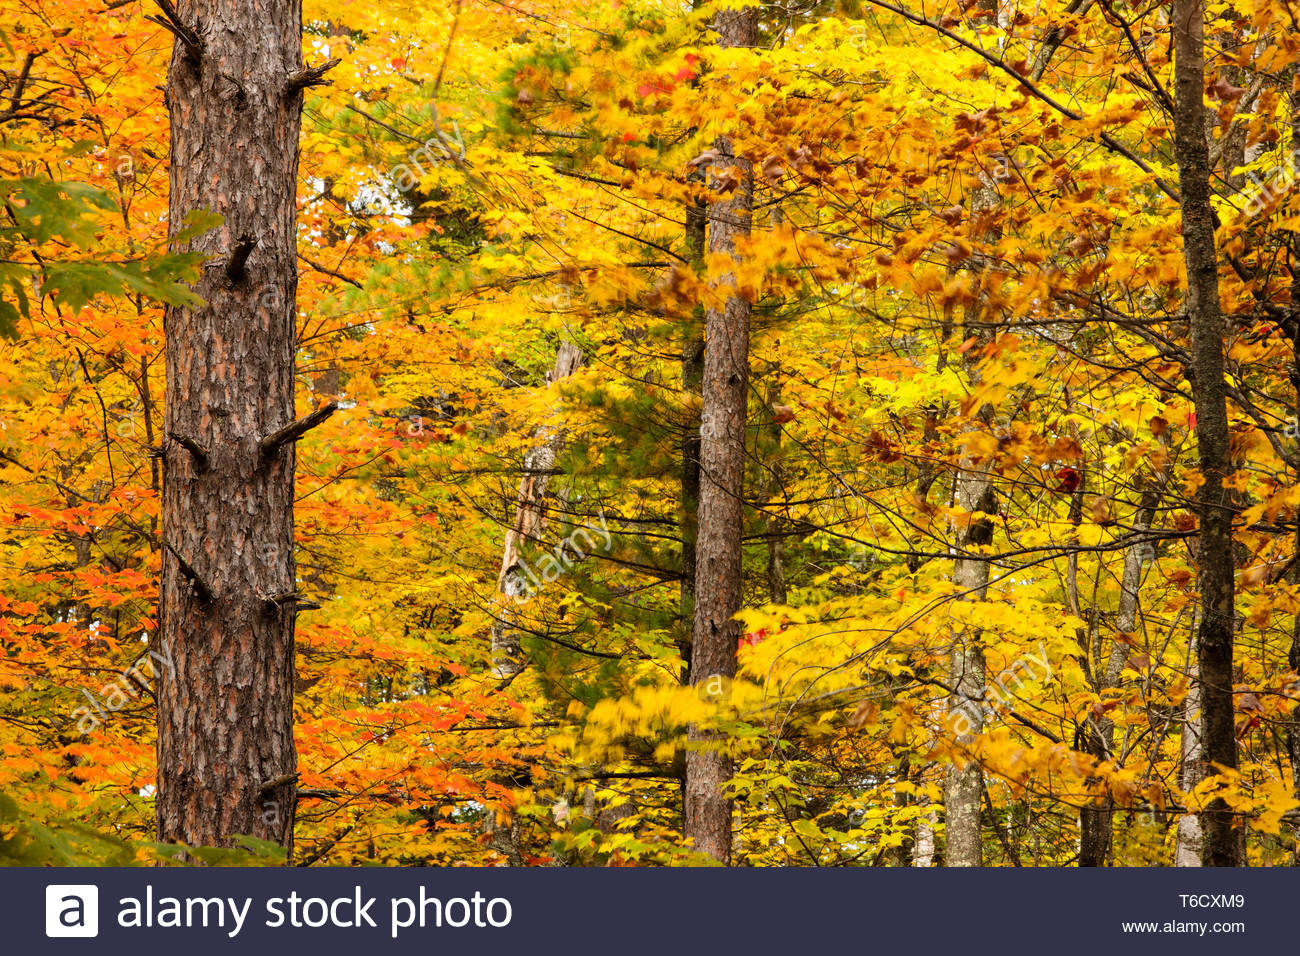 Autumn Colors In Vilas Park Lagoon >> The Red Pine Tree Trunk Contrasts Against The Kaleidoscope Colors Of